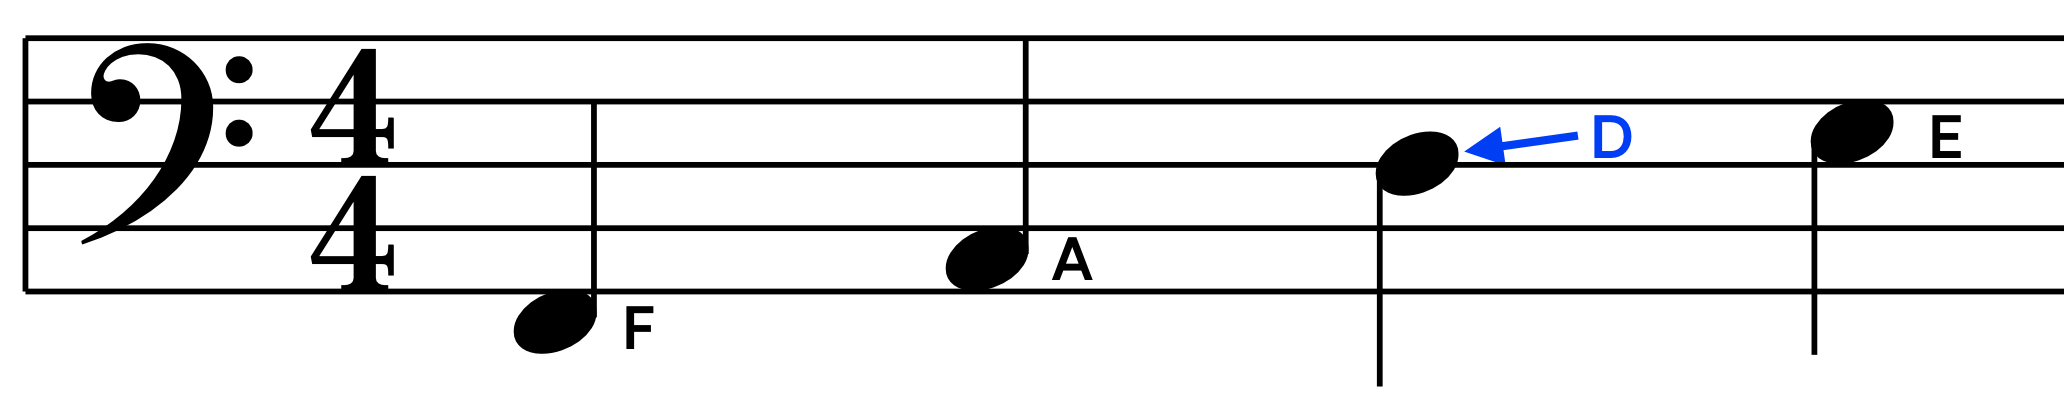 reading-sheet-music-cheat-codes-in-post-04